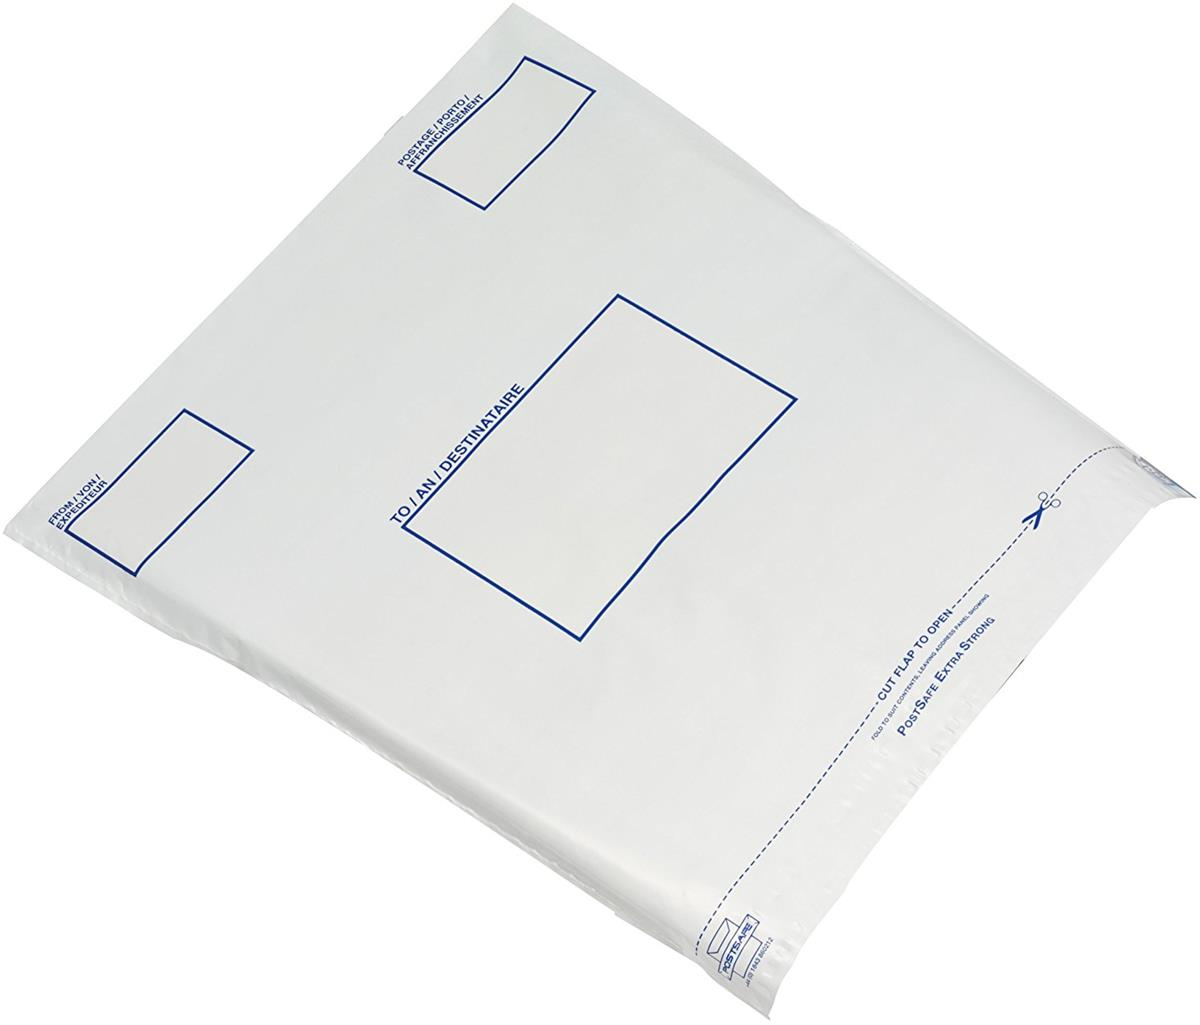 Keepsafe Envelope Extra Strong Polythene Opaque DX W440xH320mm Peel & Seal Ref KSV-MO3 [Box 100]